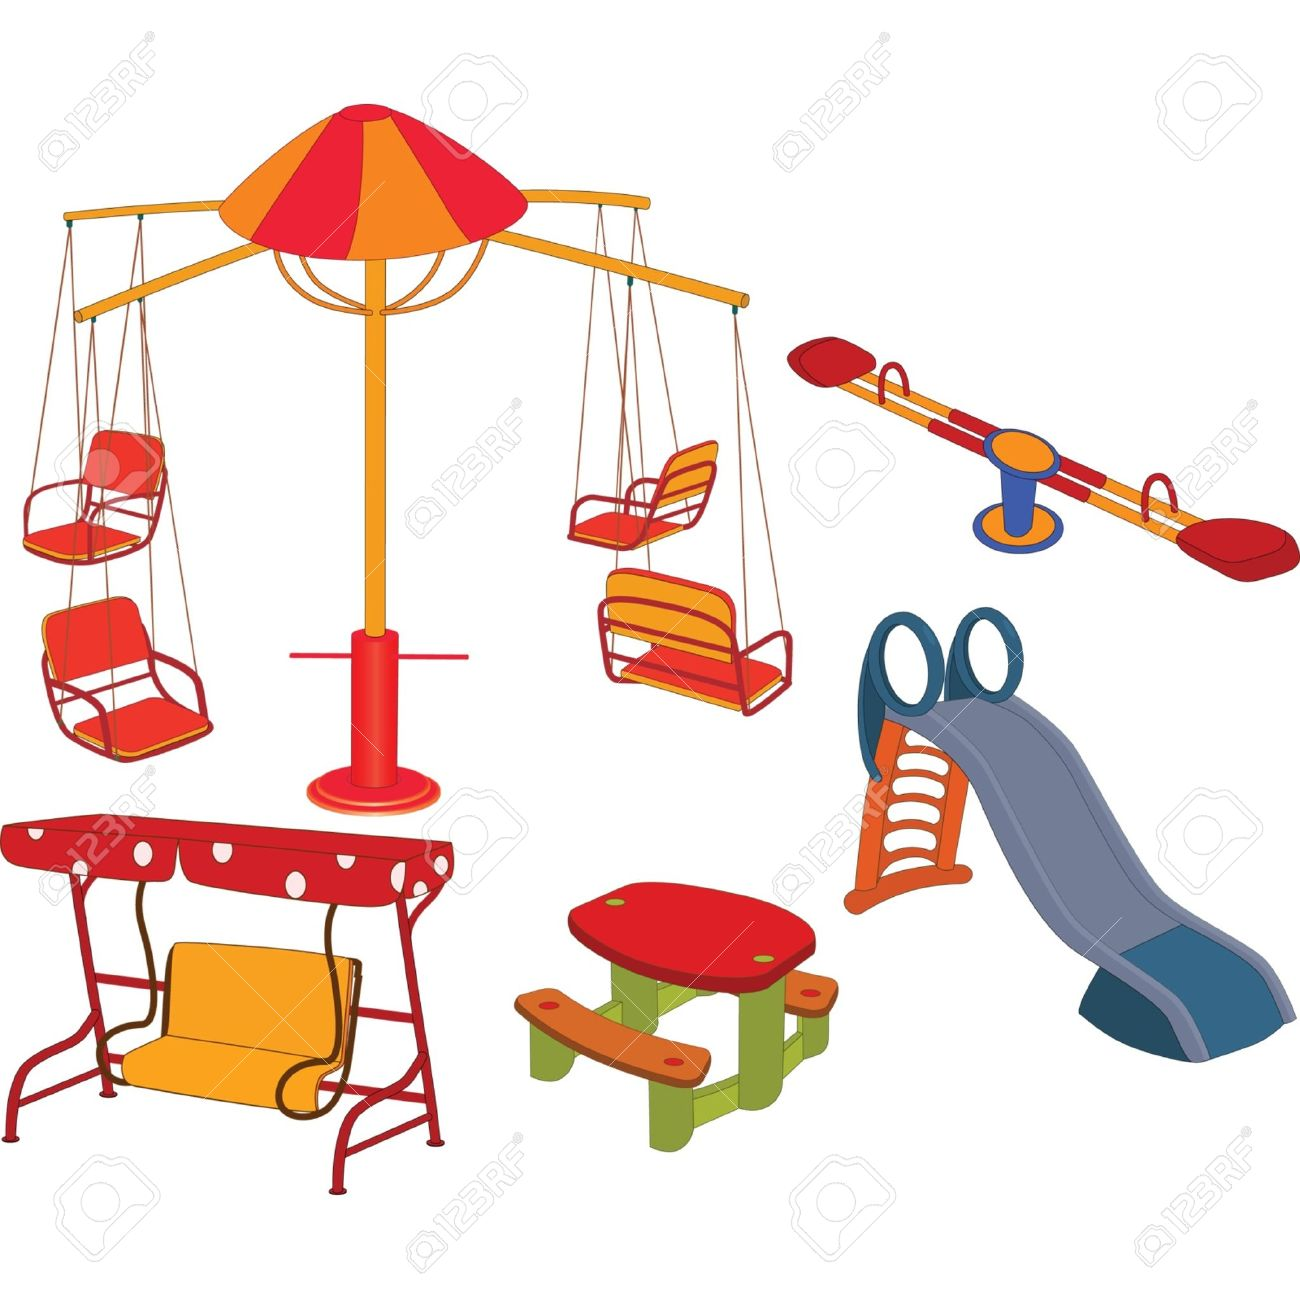 The Complete Set A Children's Swing. Clip Art Royalty Free.